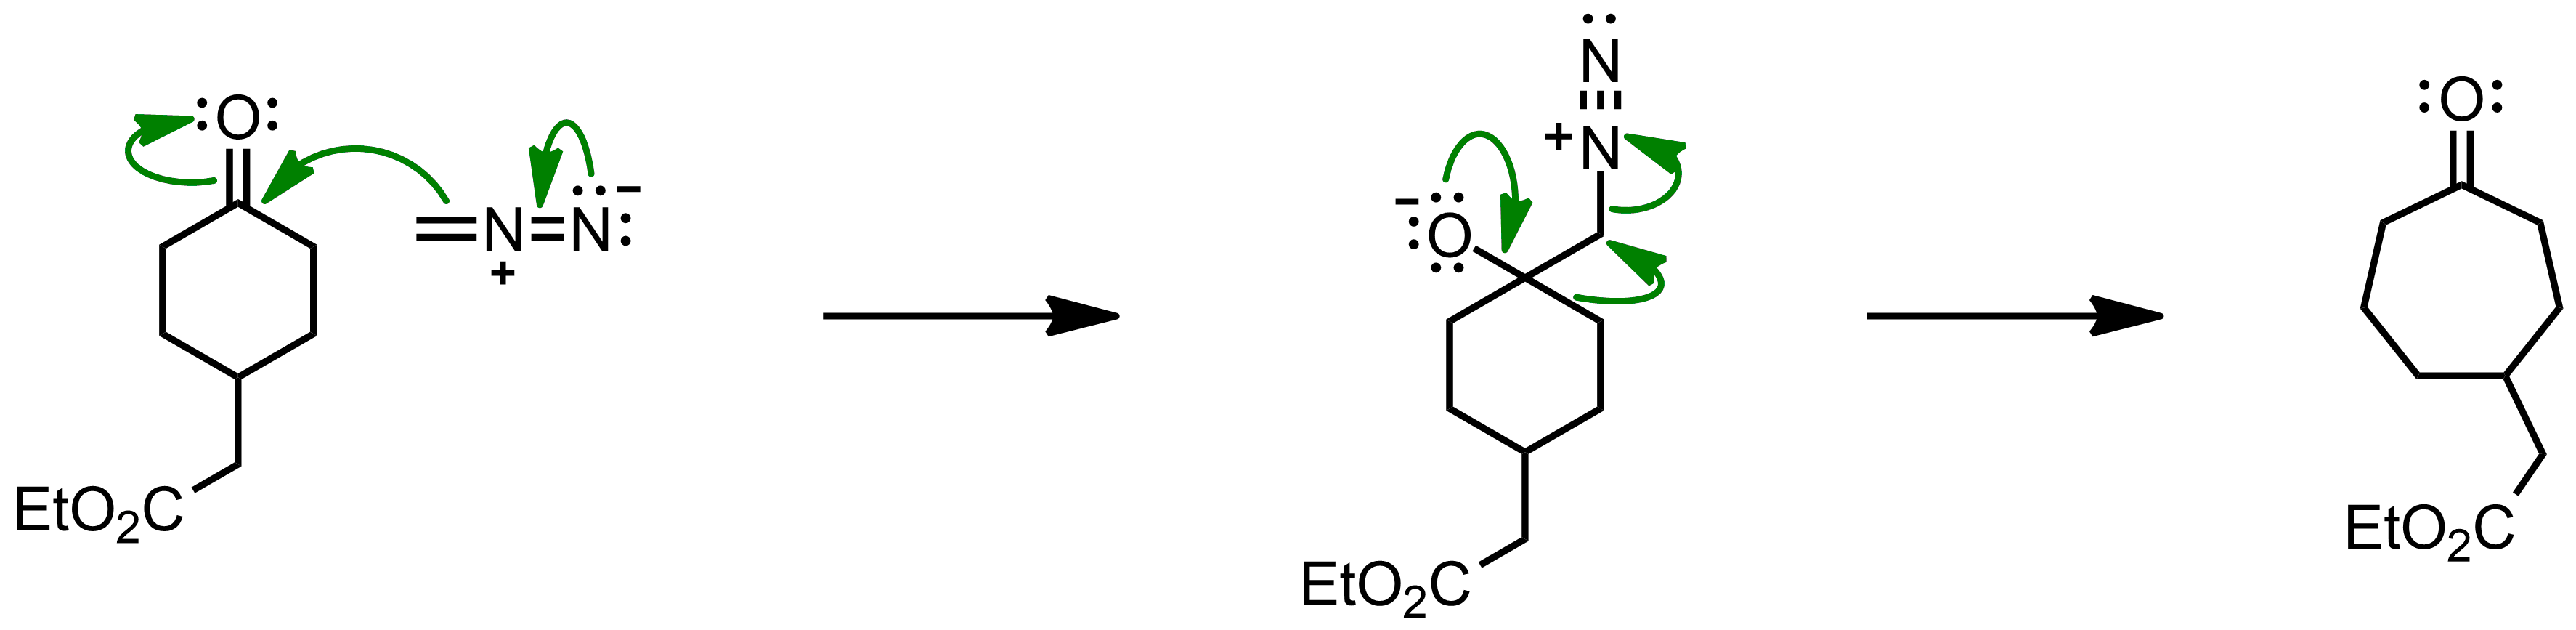 Mechanism of the Büchner-Curtius-Schlotterbeck Reaction